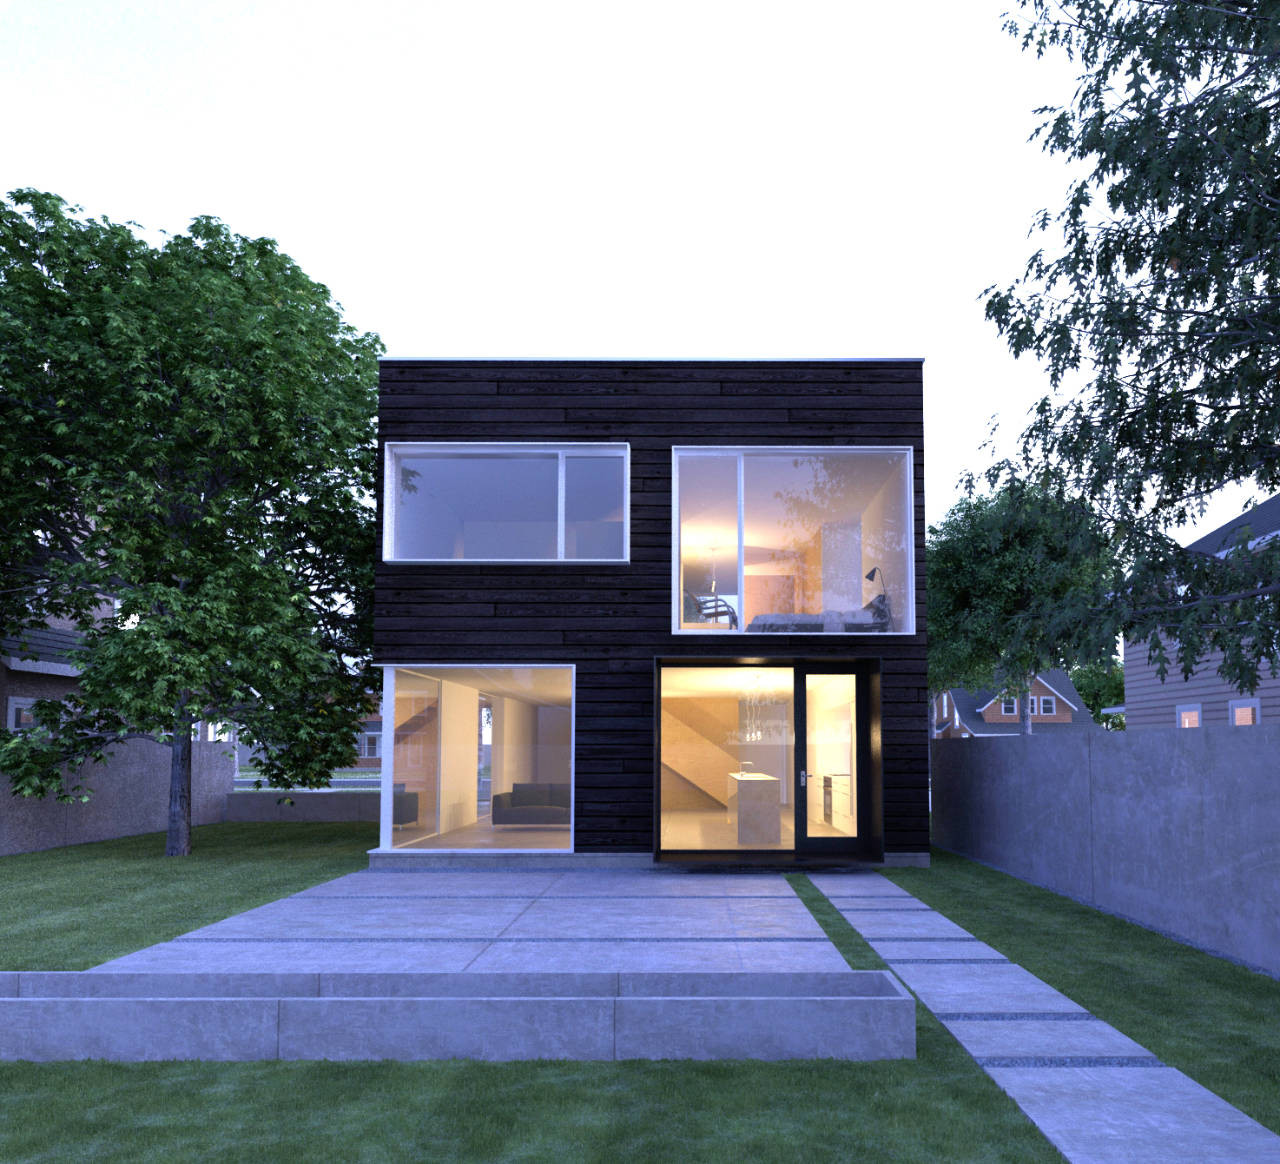 INFILL / John Dwyer Architect, Courtesy of  john dwyer architect